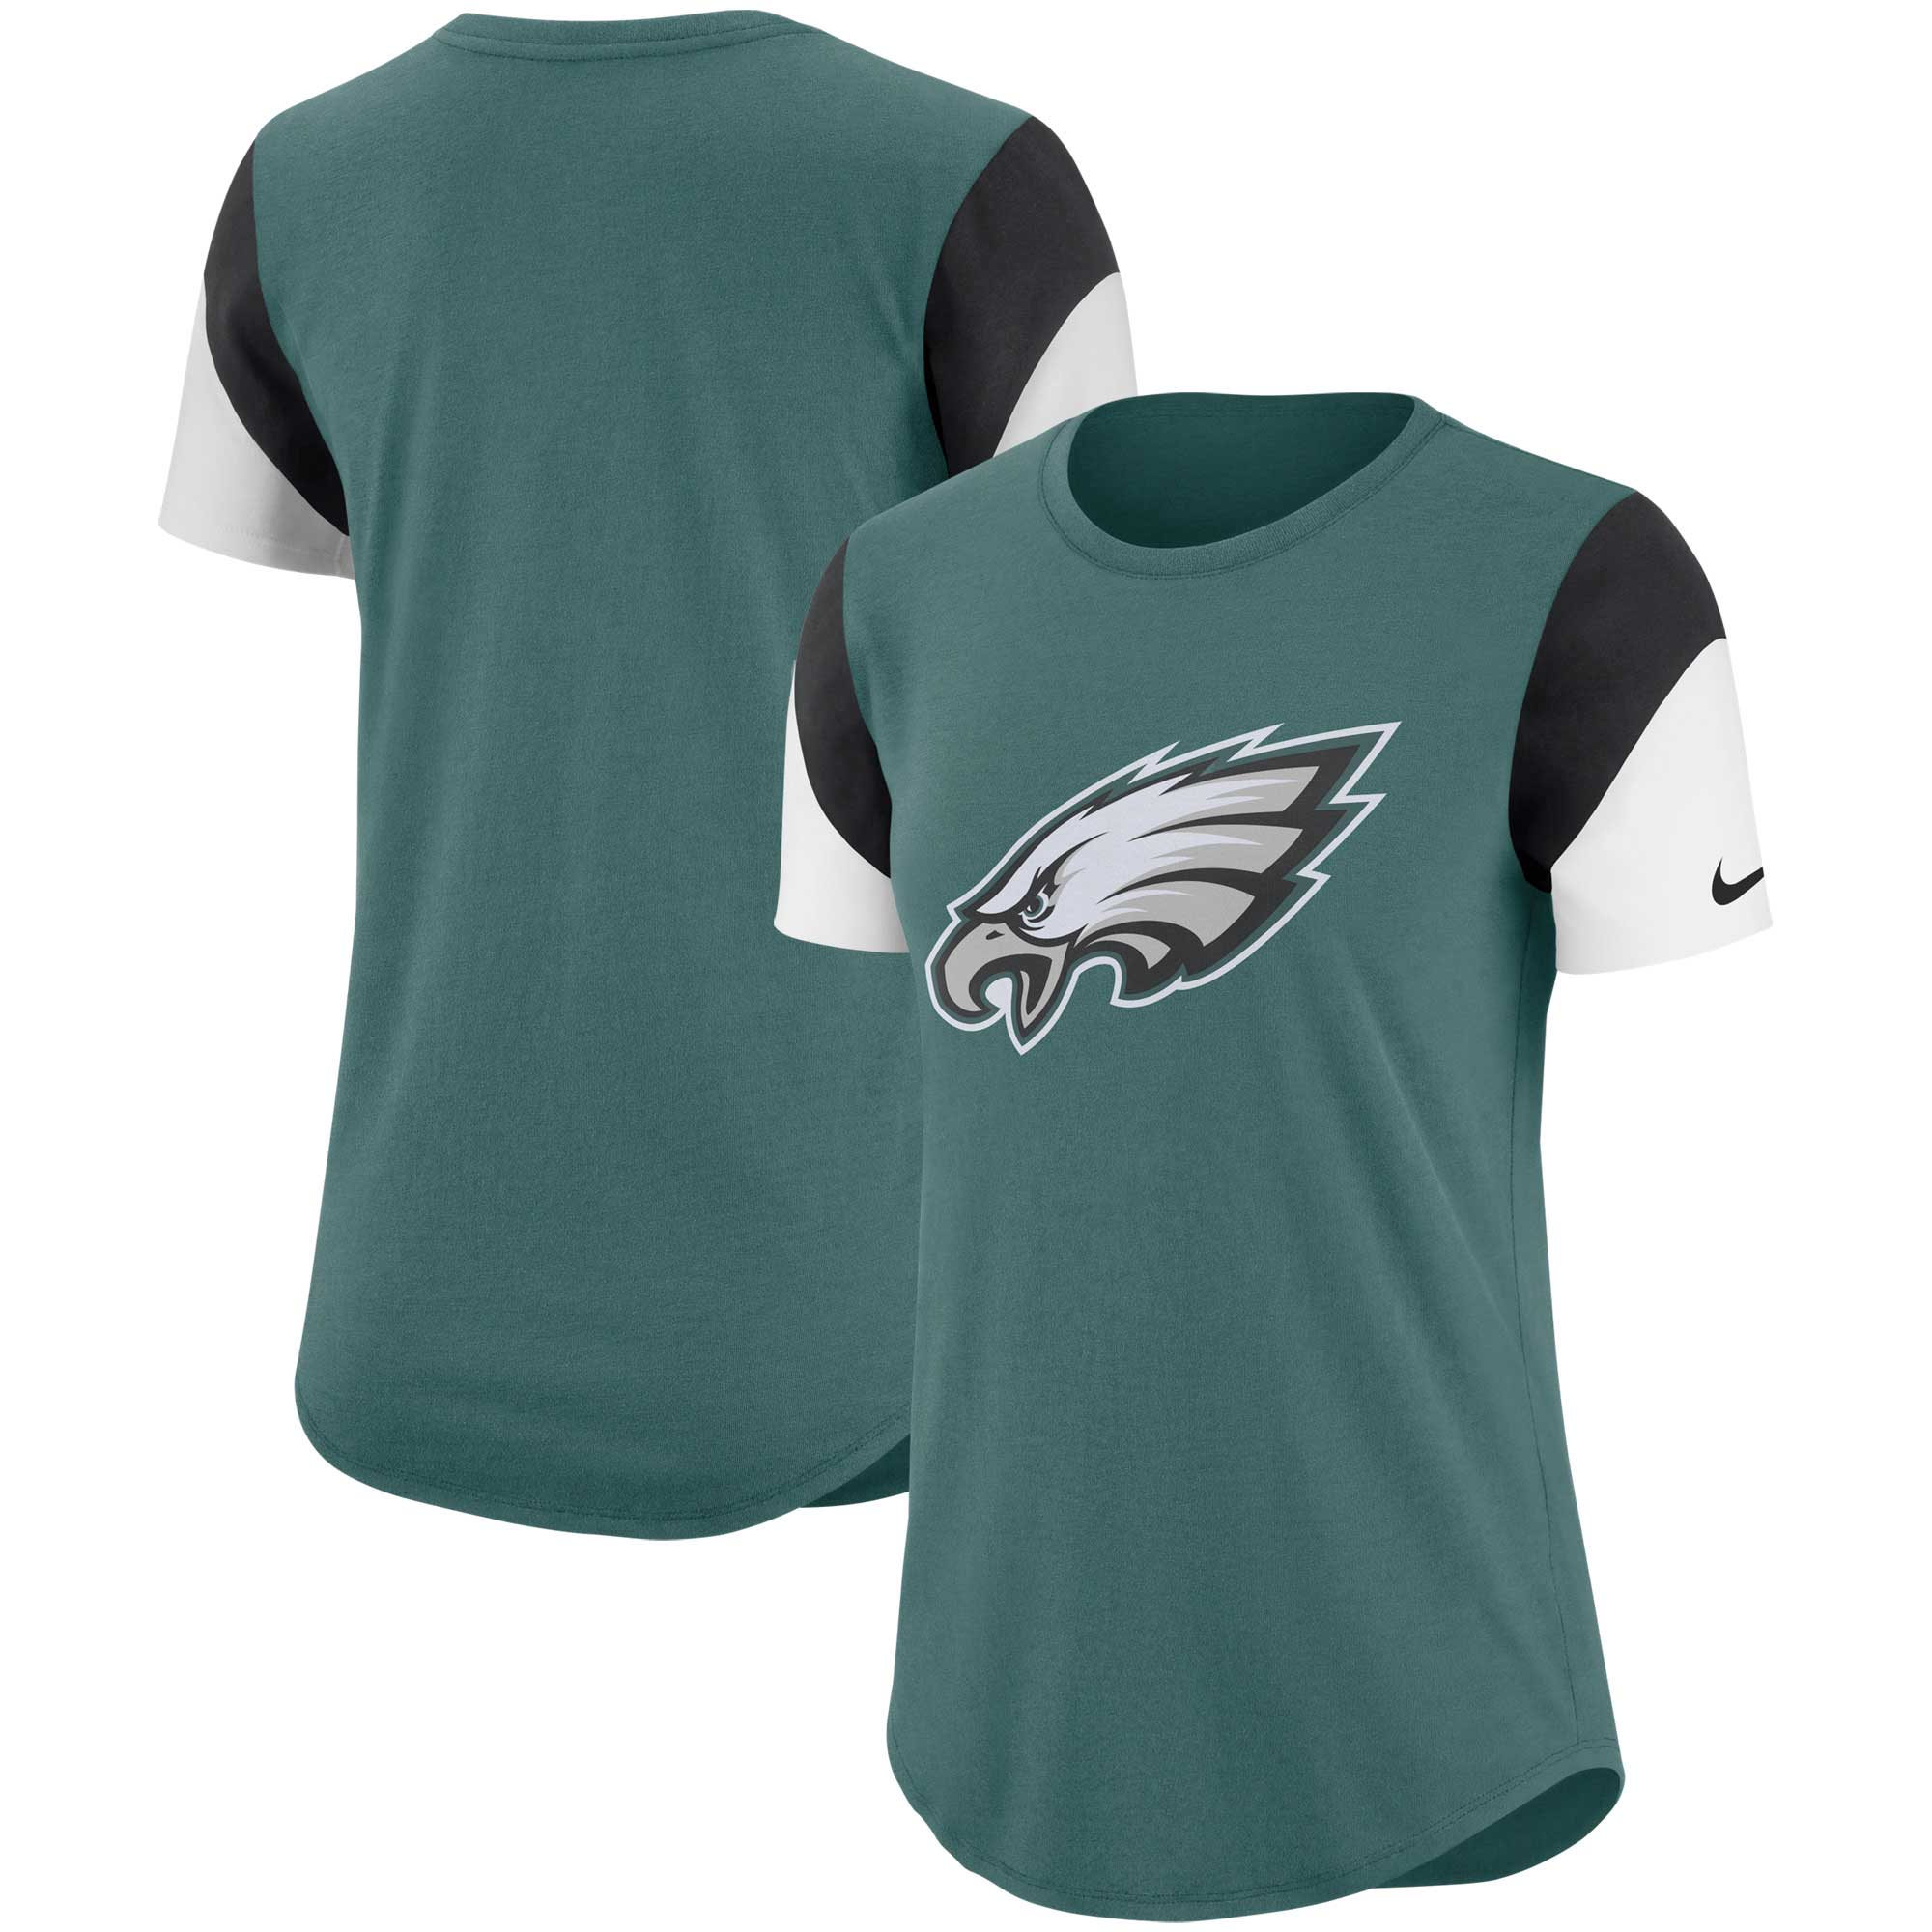 Philadelphia Eagles Nike Women's Tri-Blend Team Fan T-Shirt - Midnight Green/Black